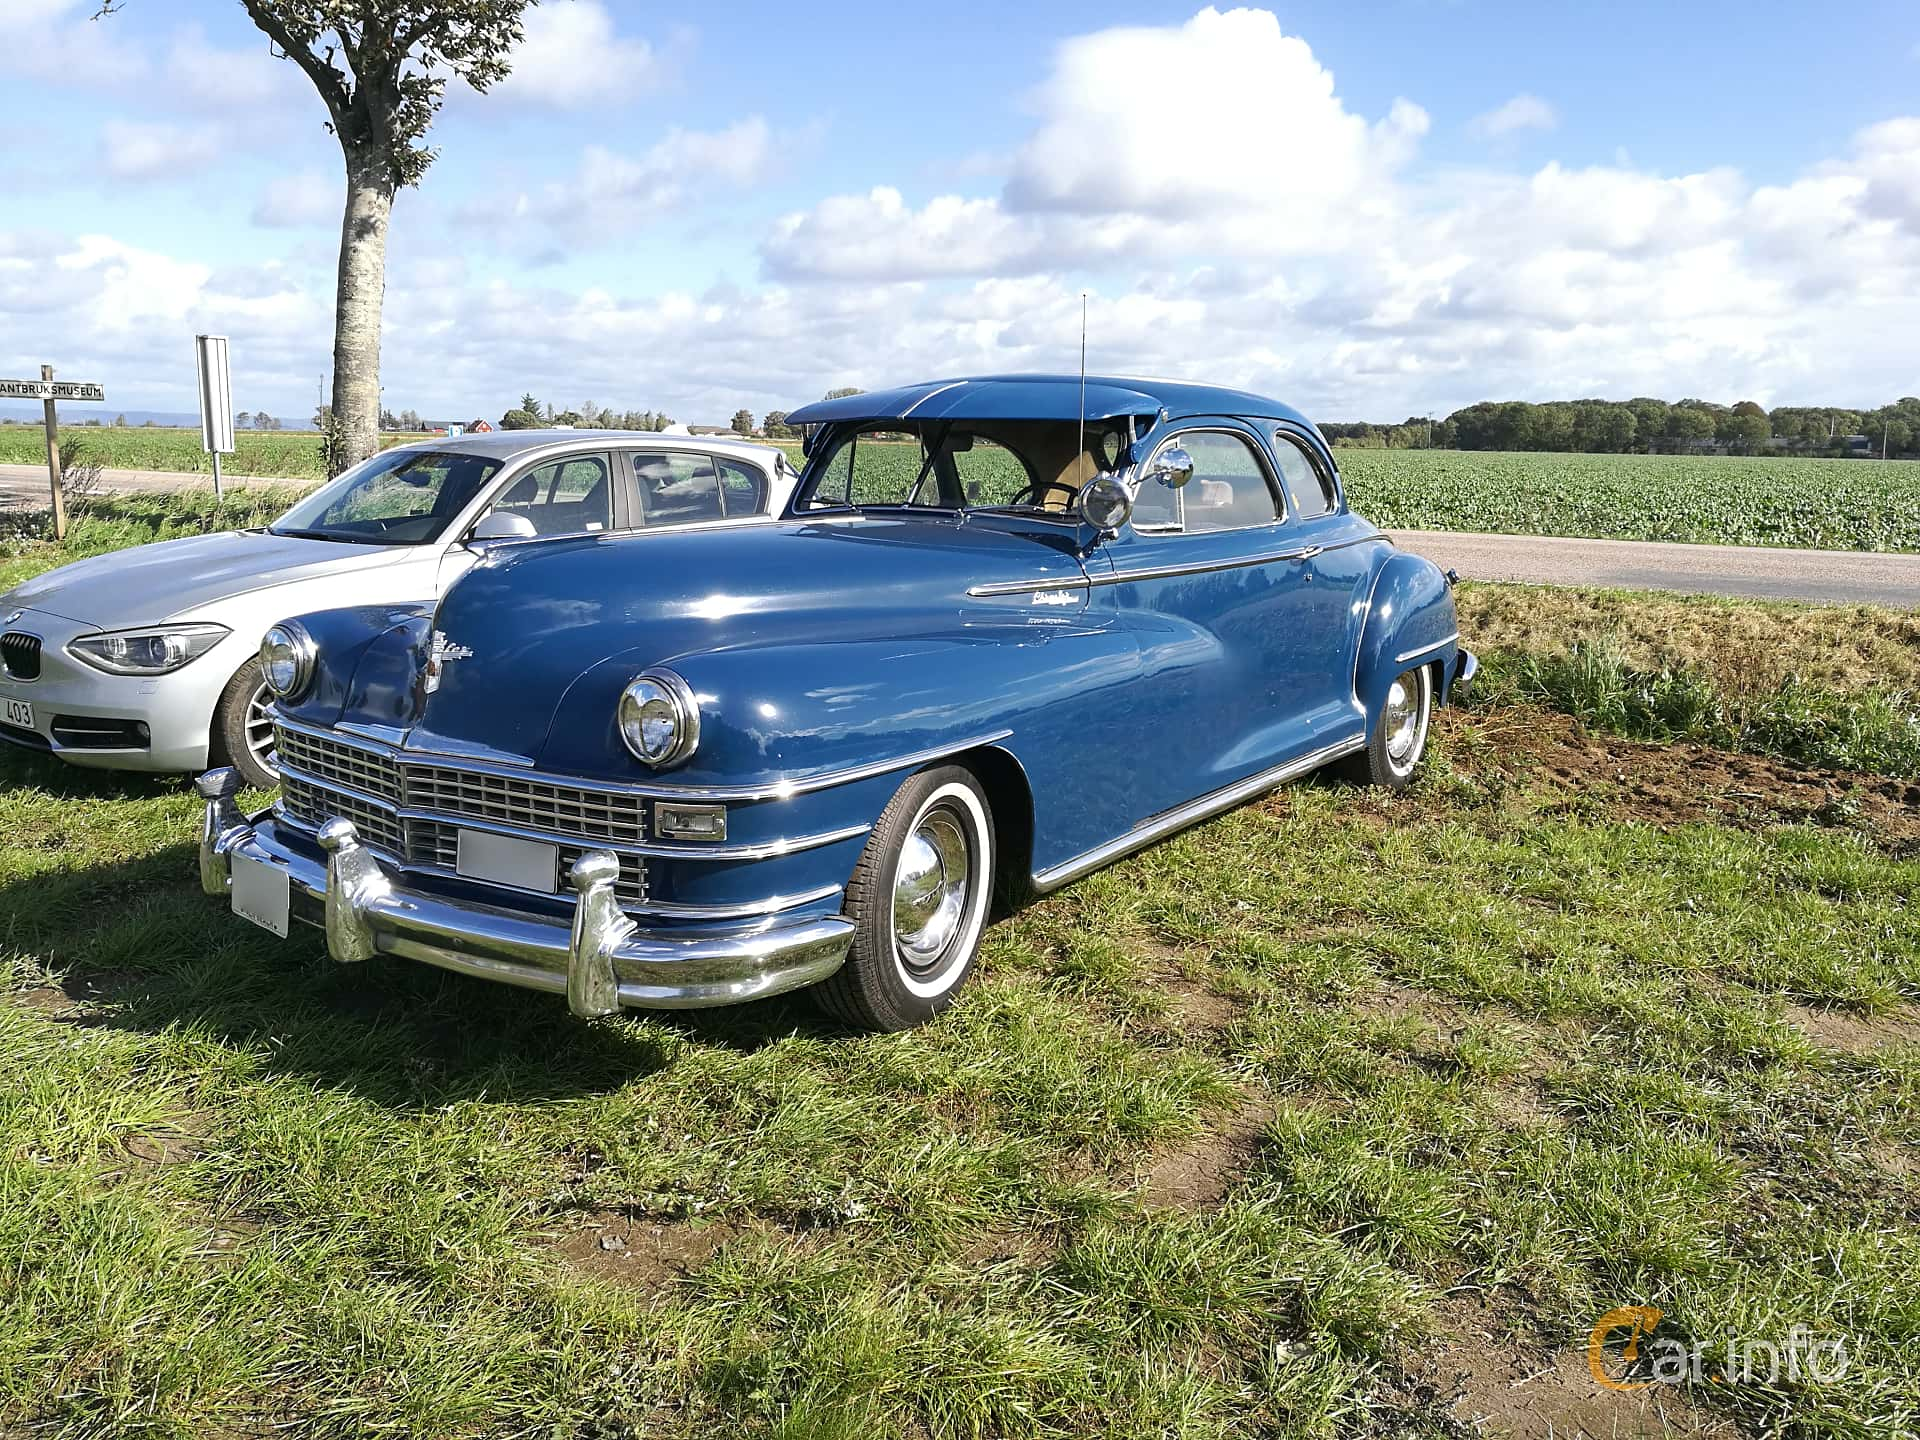 Chrysler New Yorker Club Coupé 5.3 Semi-Automatisk, 137hk, 1947